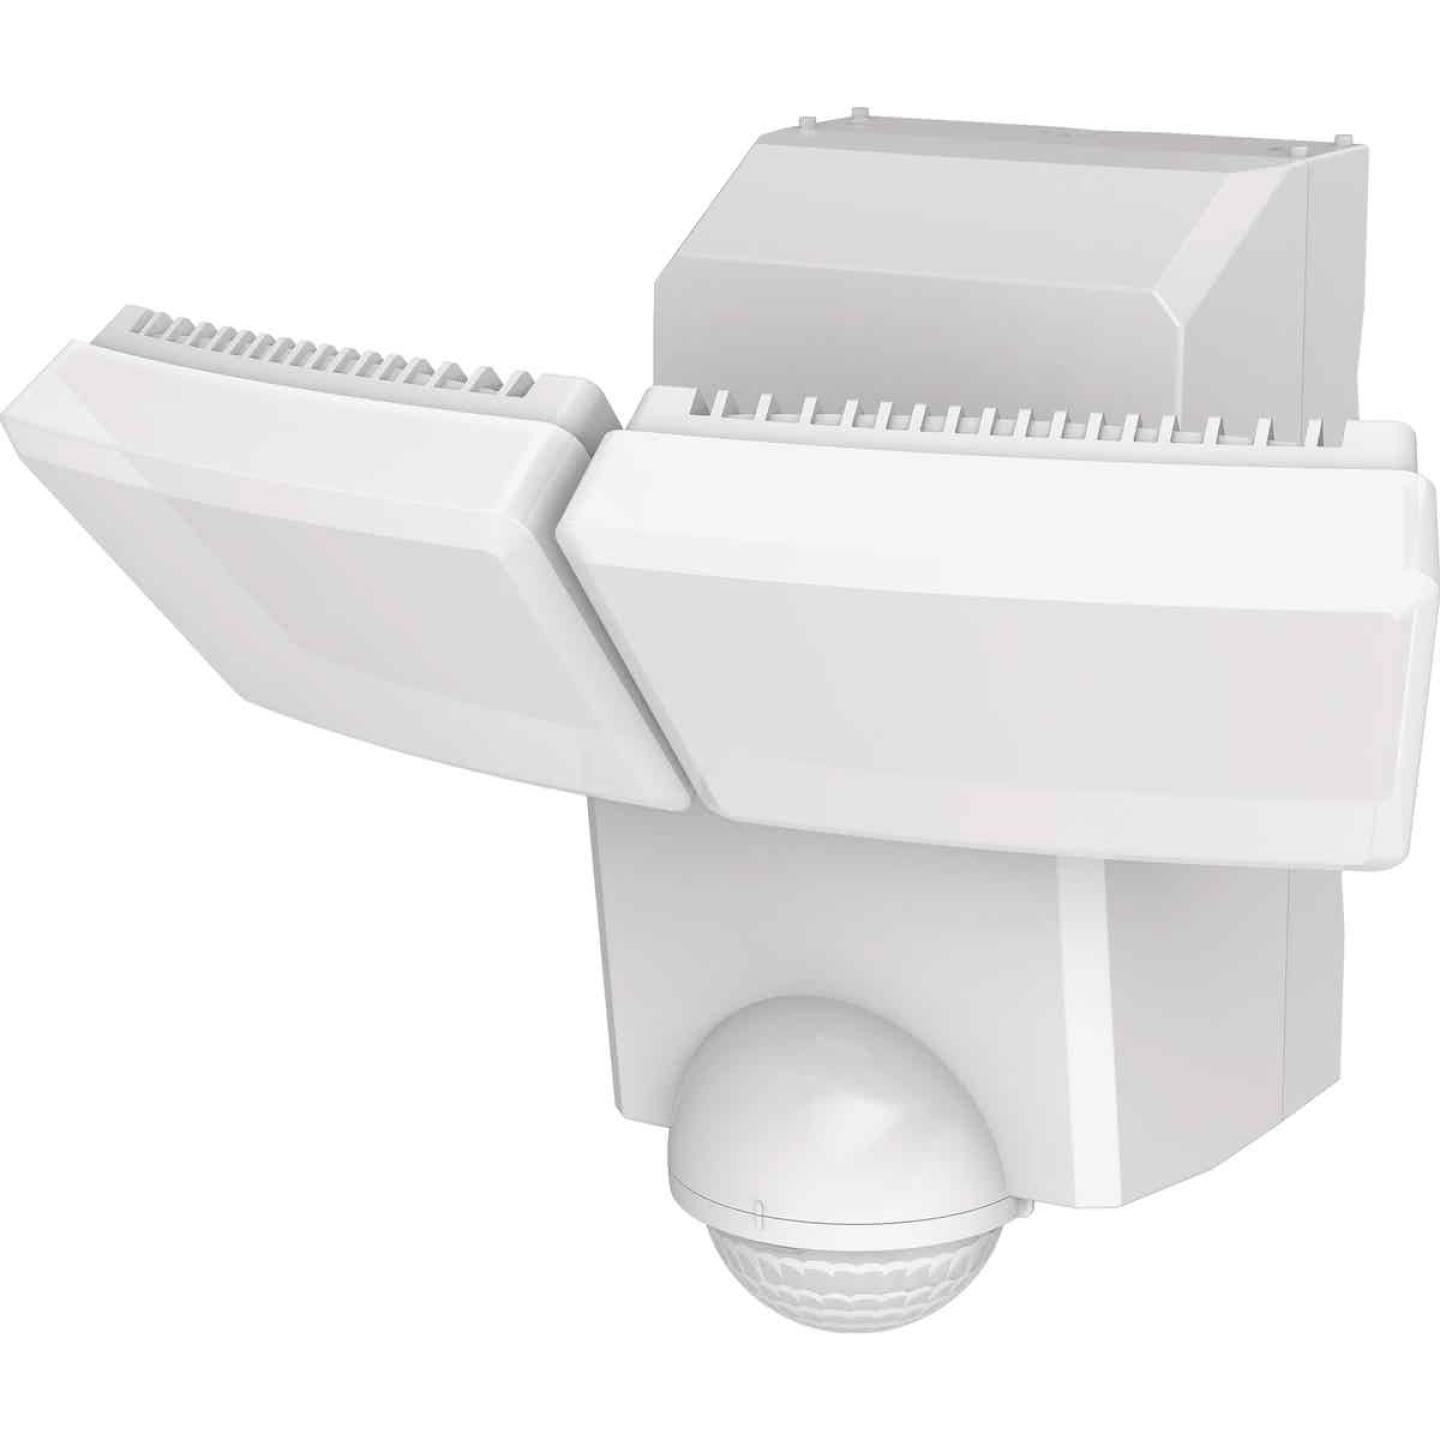 IQ America White Motion Sensing LED Solar Powered Security Light Fixture, 1400-Lumen Image 1